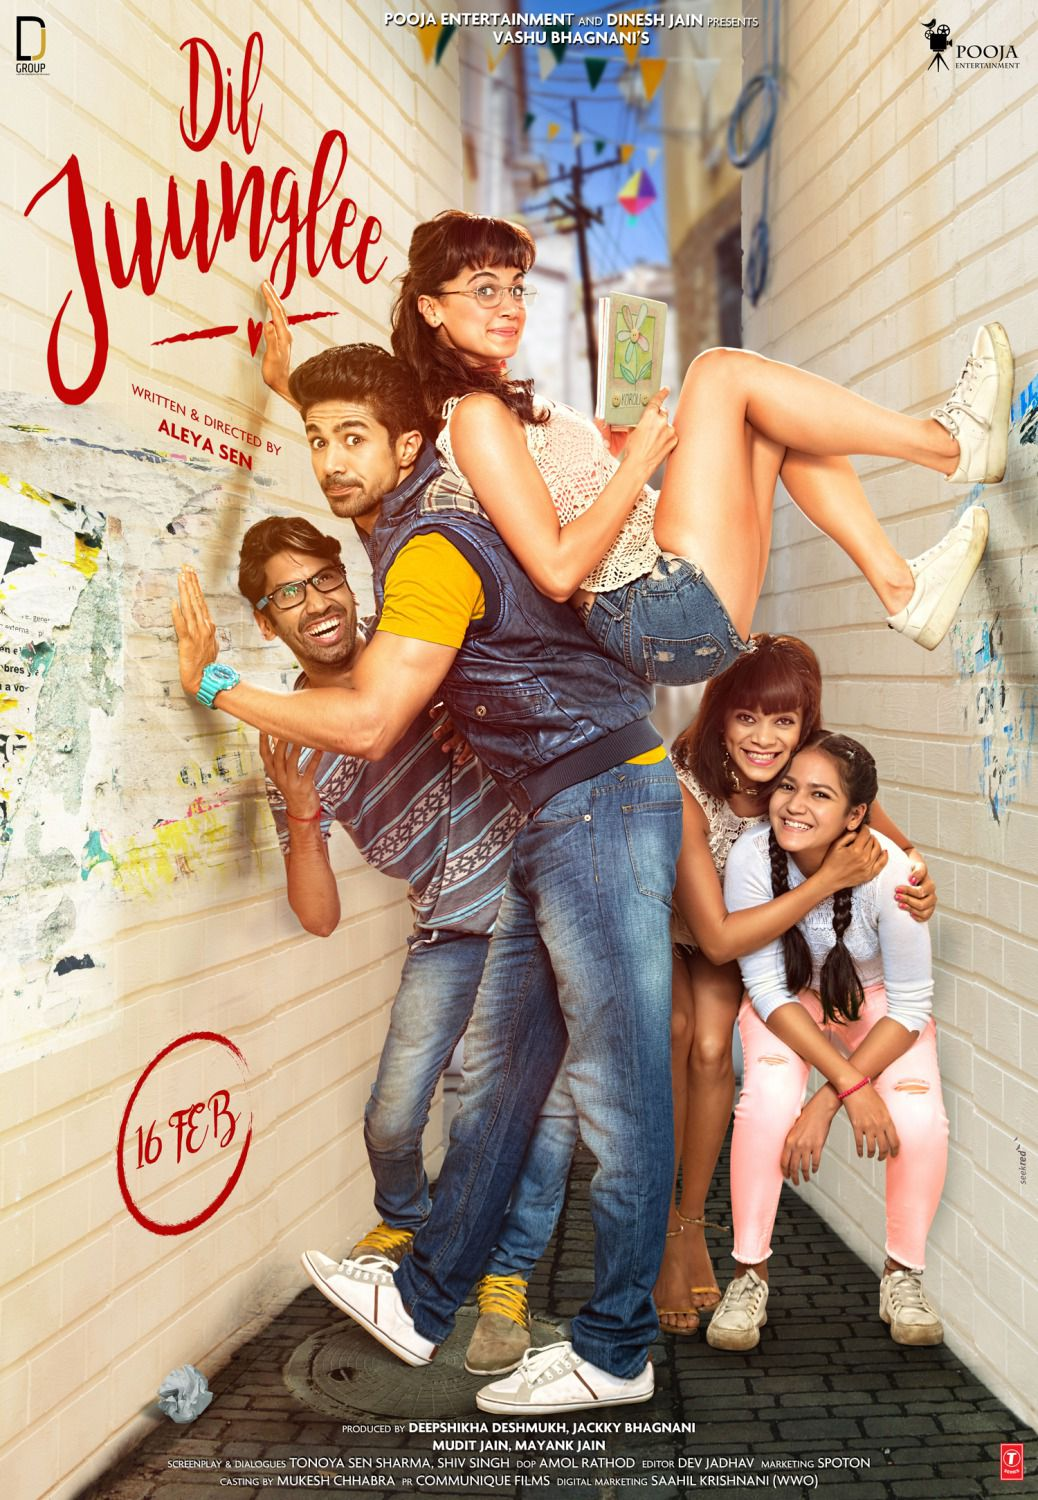 Dil Juunglee - Love Comedy Film Poster